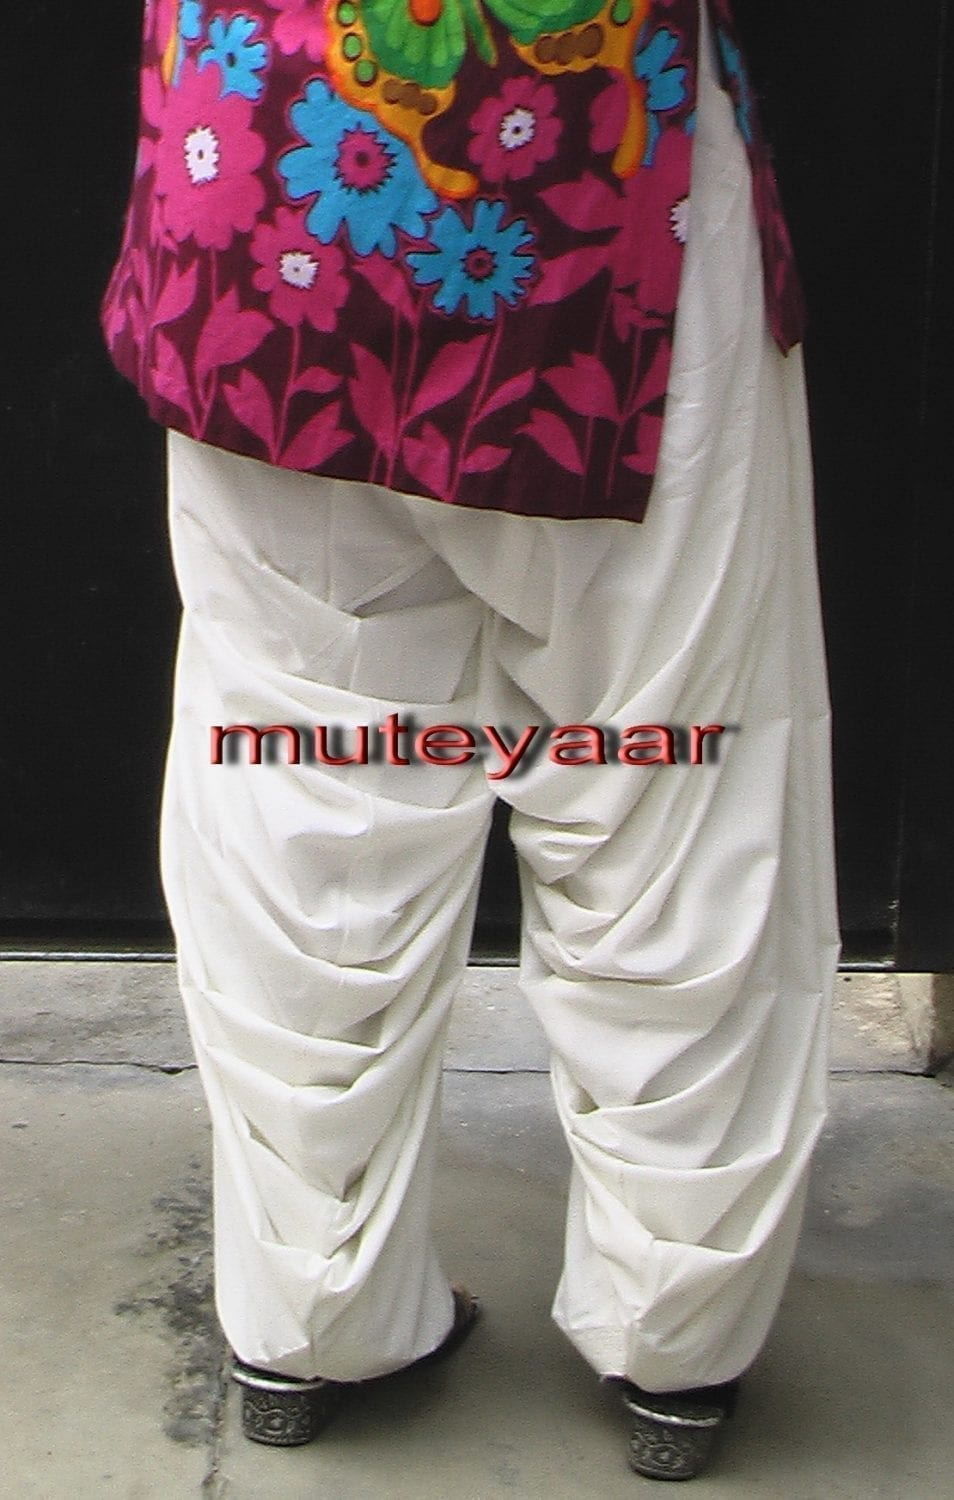 Patiala Salwar Ready to Wear - Buy Online from Patiala City !! 5